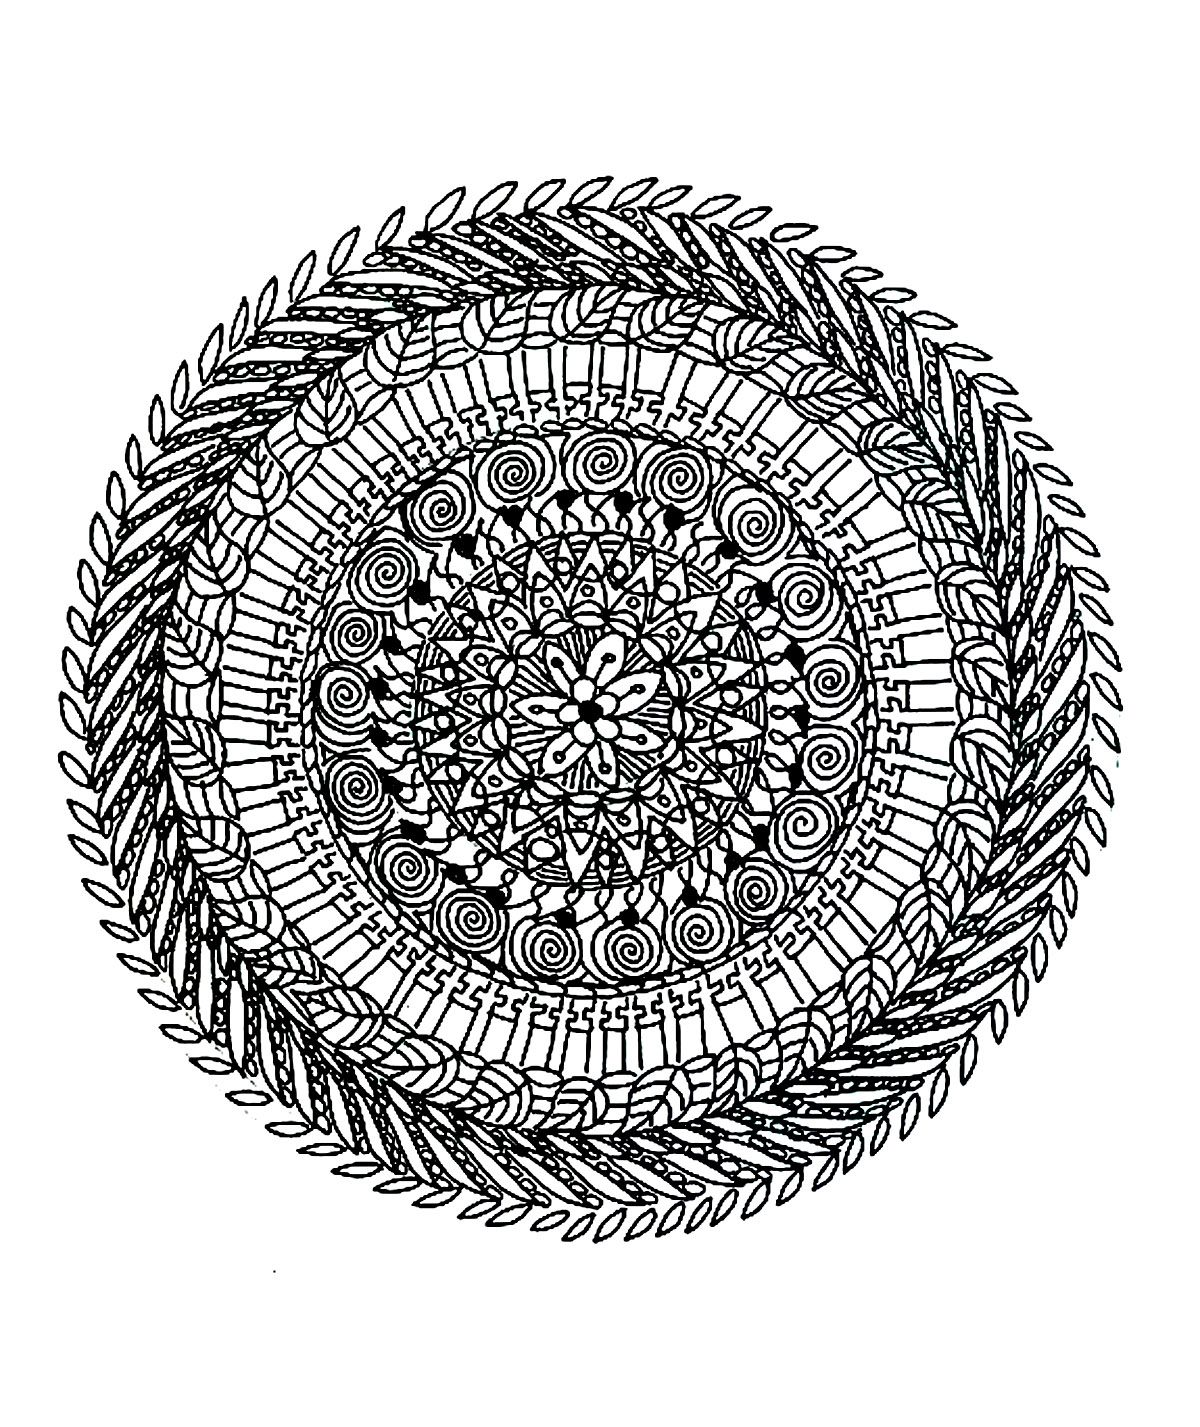 Free Mandalas To Print And Color Very Difficult Mandalas For Adults Mandala Coloring Pages Mandala Coloring Mermaid Coloring Pages